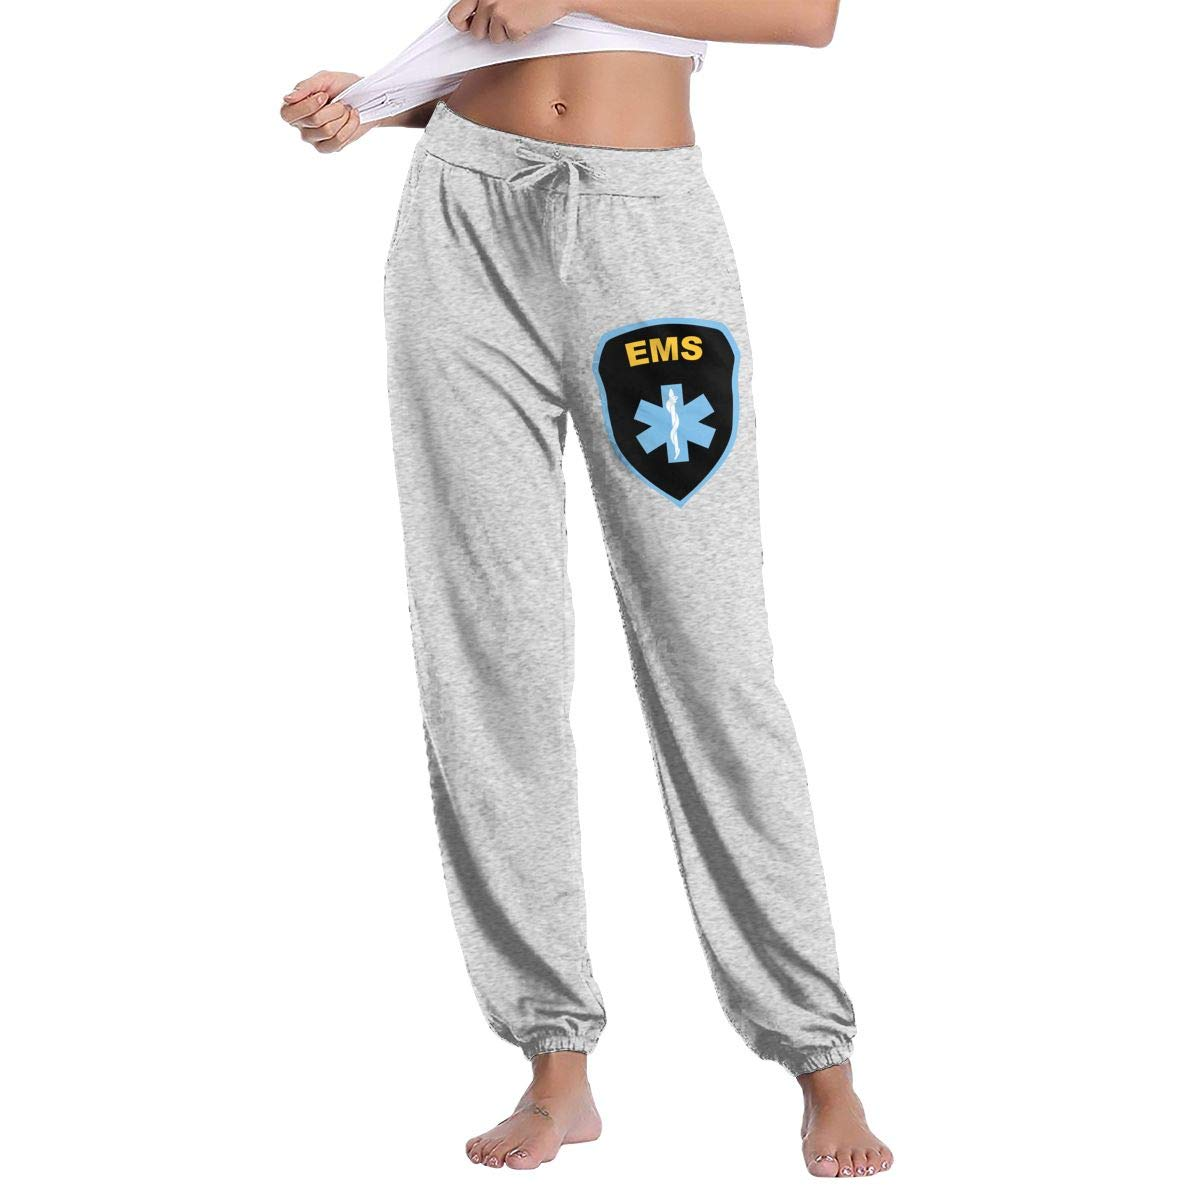 XingxDianD EMS Star of Life EMT Paramedic Medic Women s Joggers Sweatpants  Cotton Long Pants with Pockets at Amazon Women s Clothing store  1e3be350c